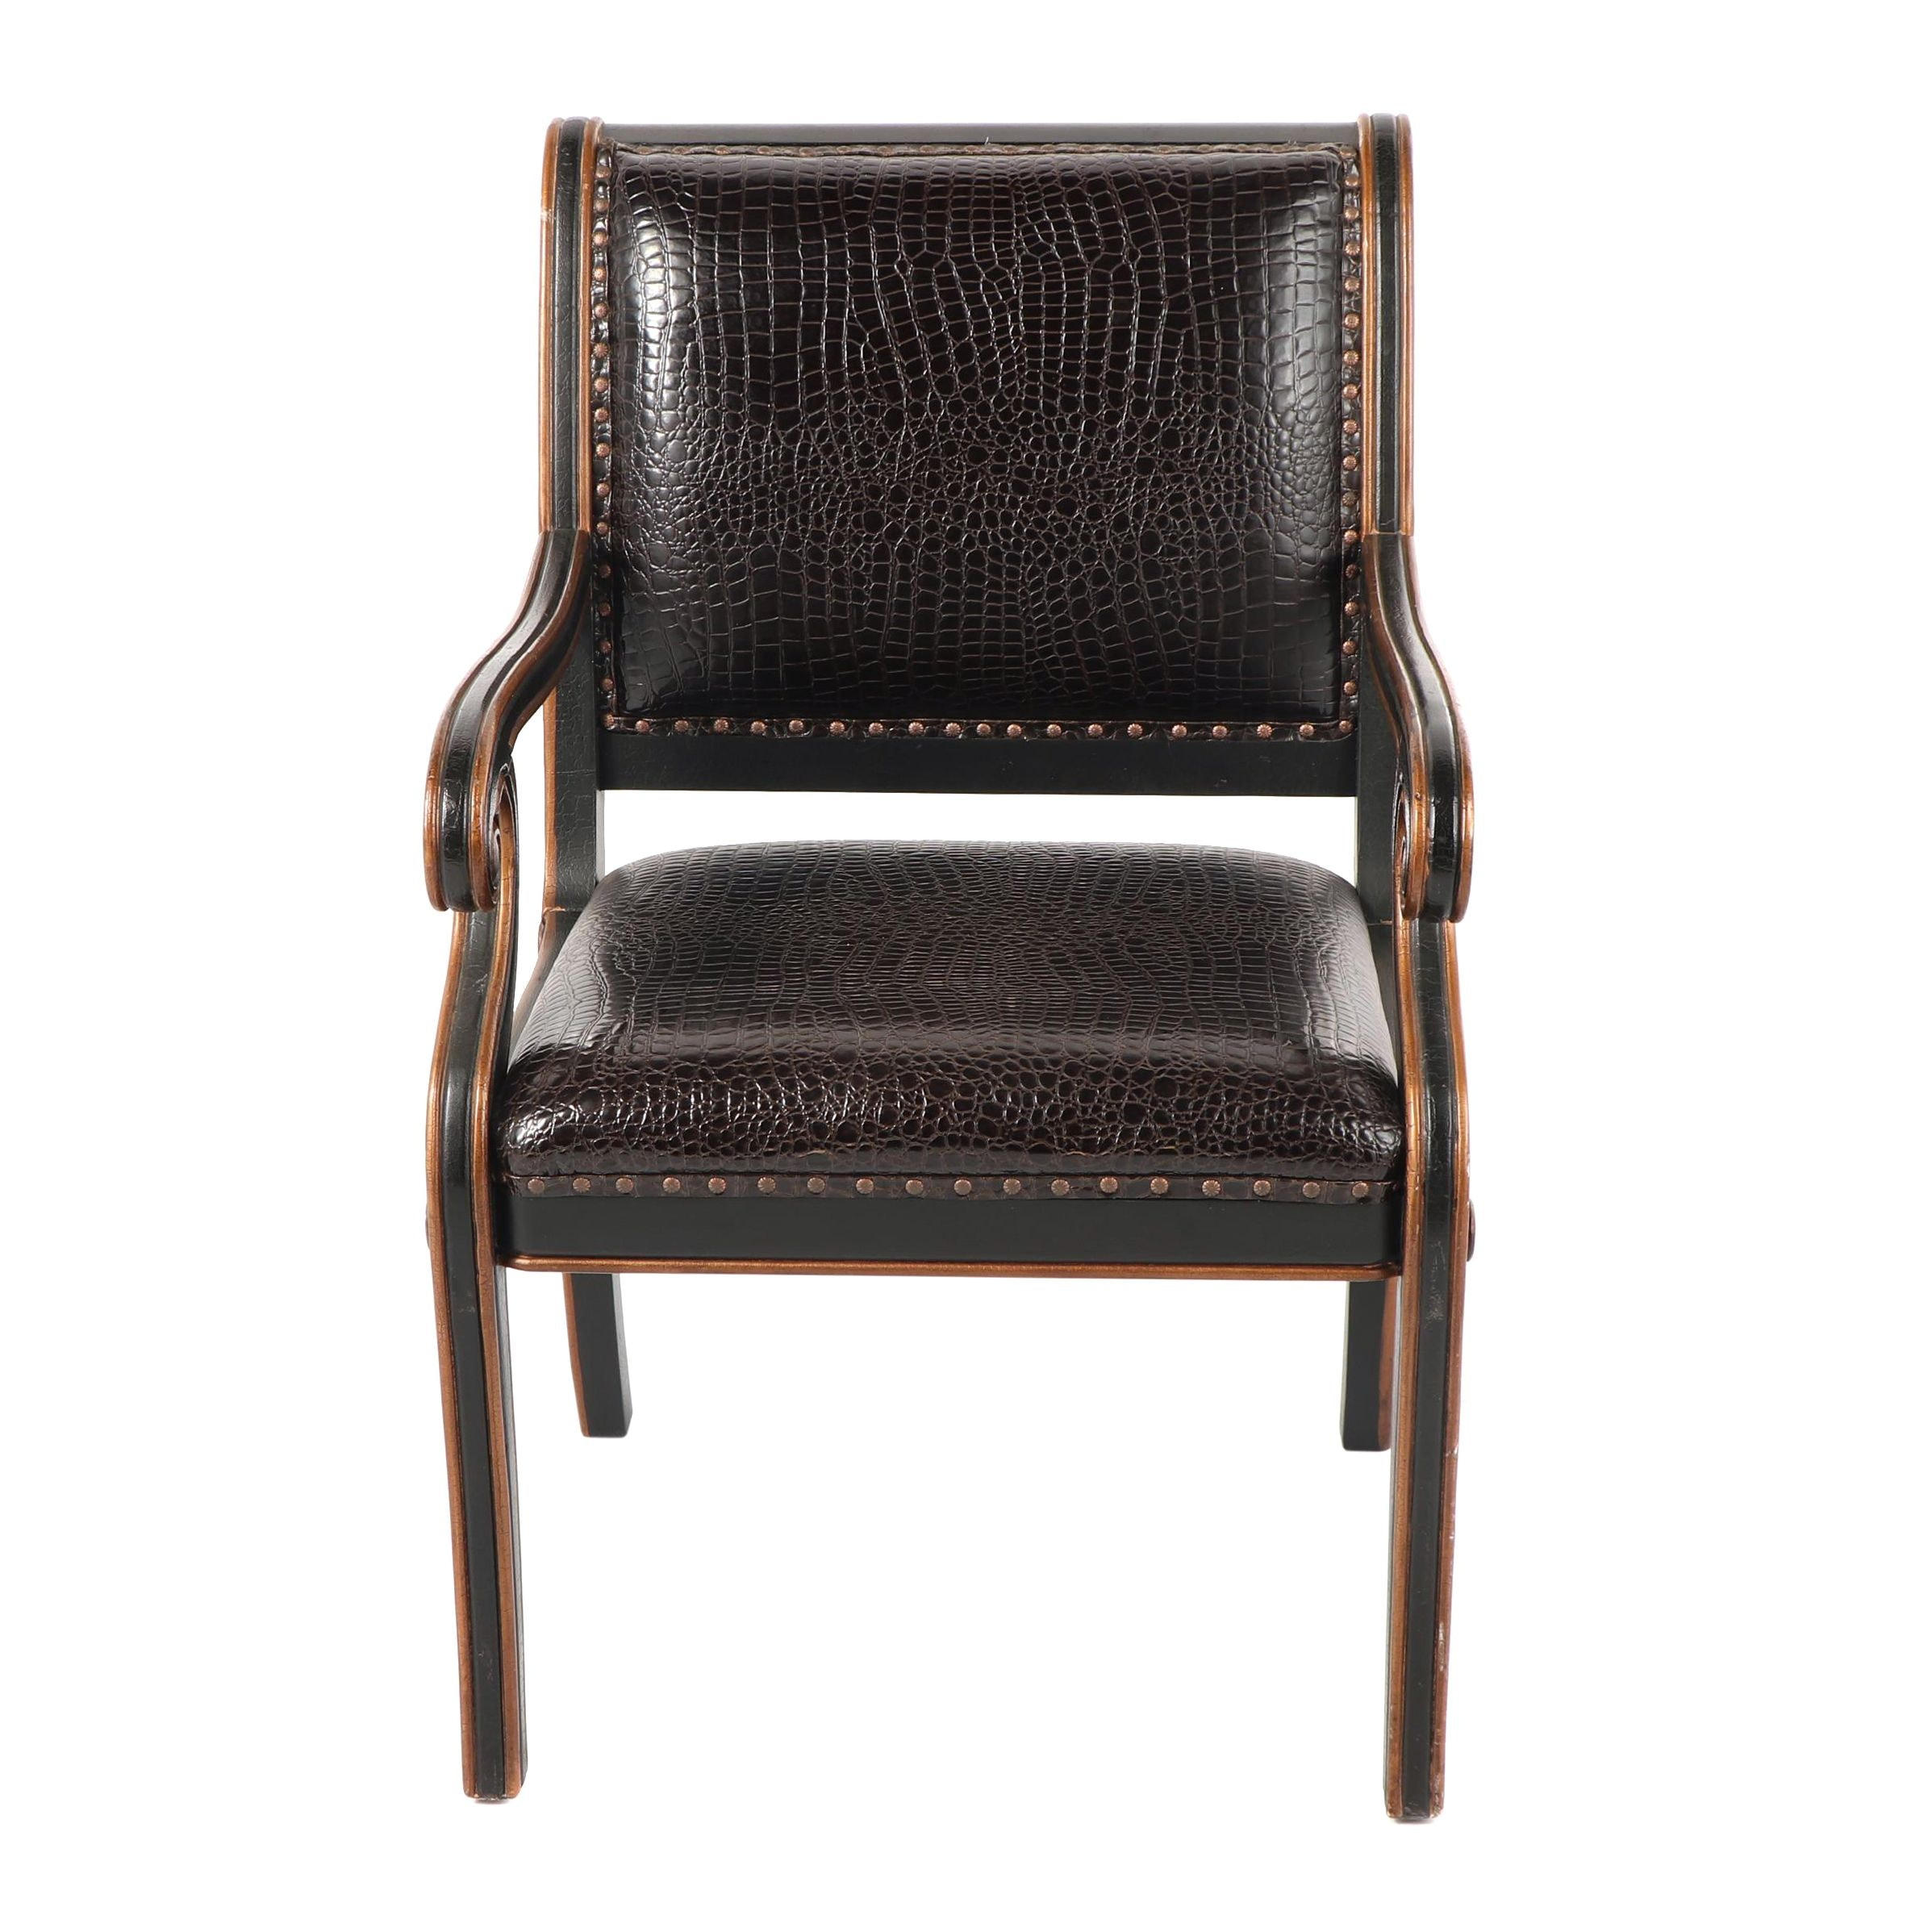 Empire Style Upholstered Armchair by Ultimate Chairs Limited, 21st Century